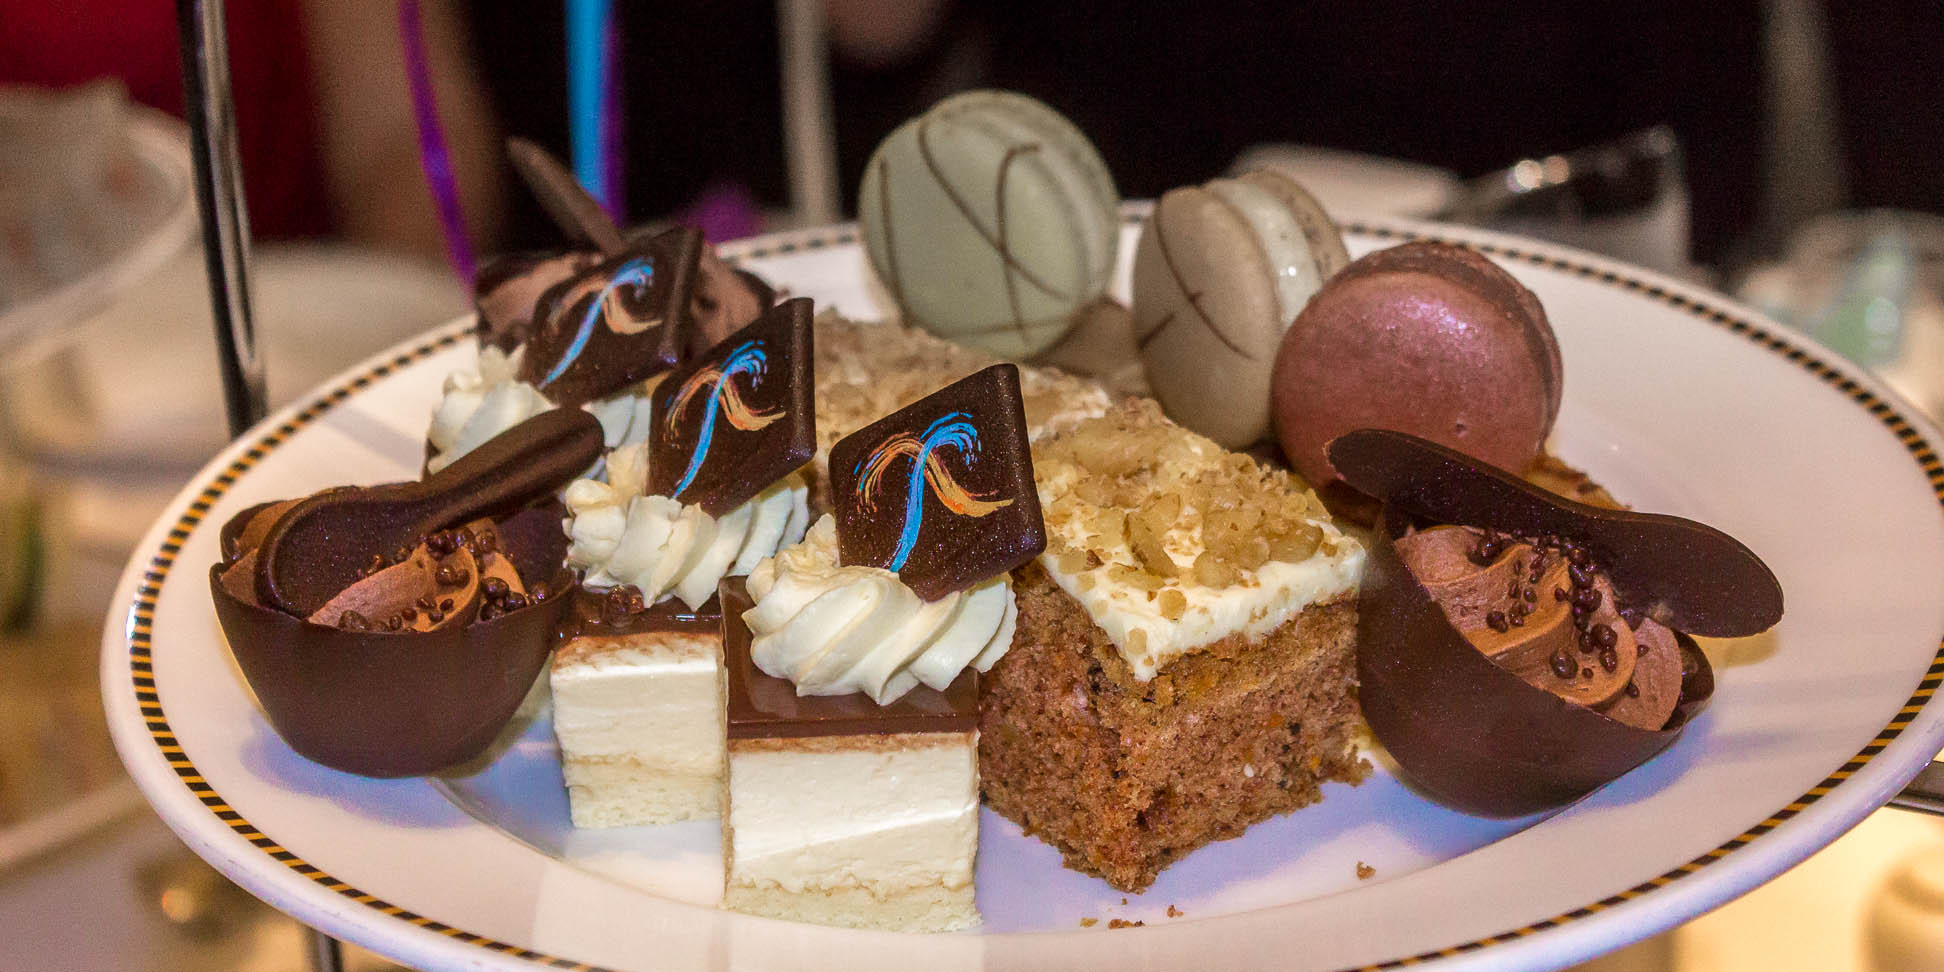 Baileys Irish cream cheesecake, frosted carrot cake, french macarons, Belgium chocolate mousse with chocolate crunch